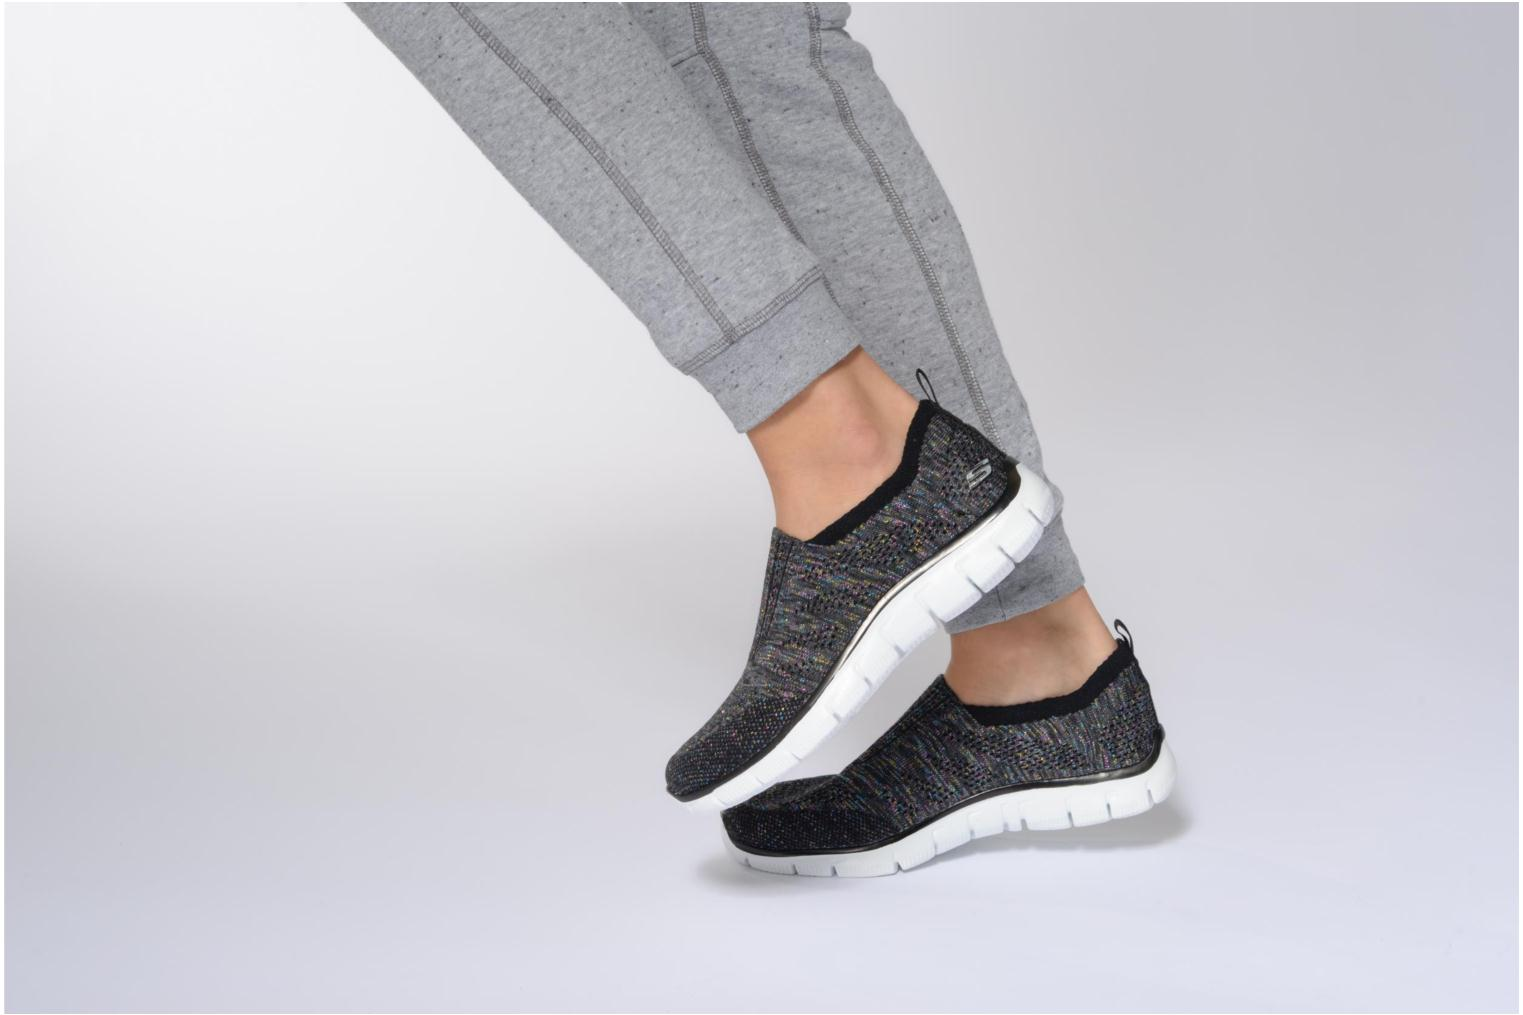 Empire Skechers up Empire round Skechers Bkmt up Bkmt Skechers round YqSxqF6